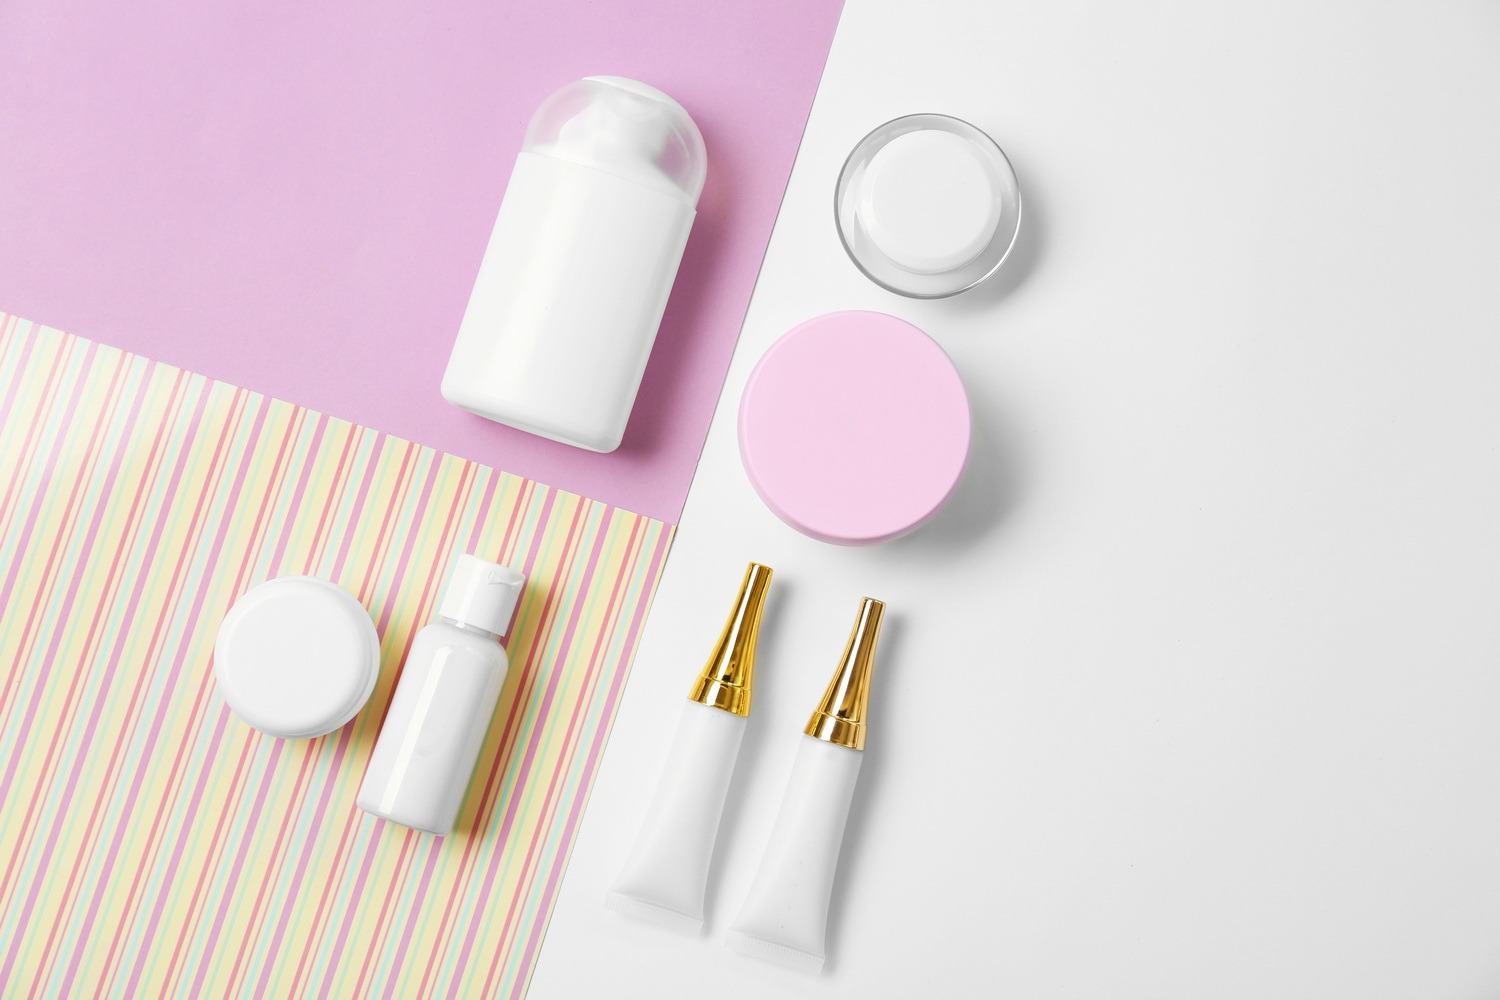 Cosmetics spa mock-up on color background